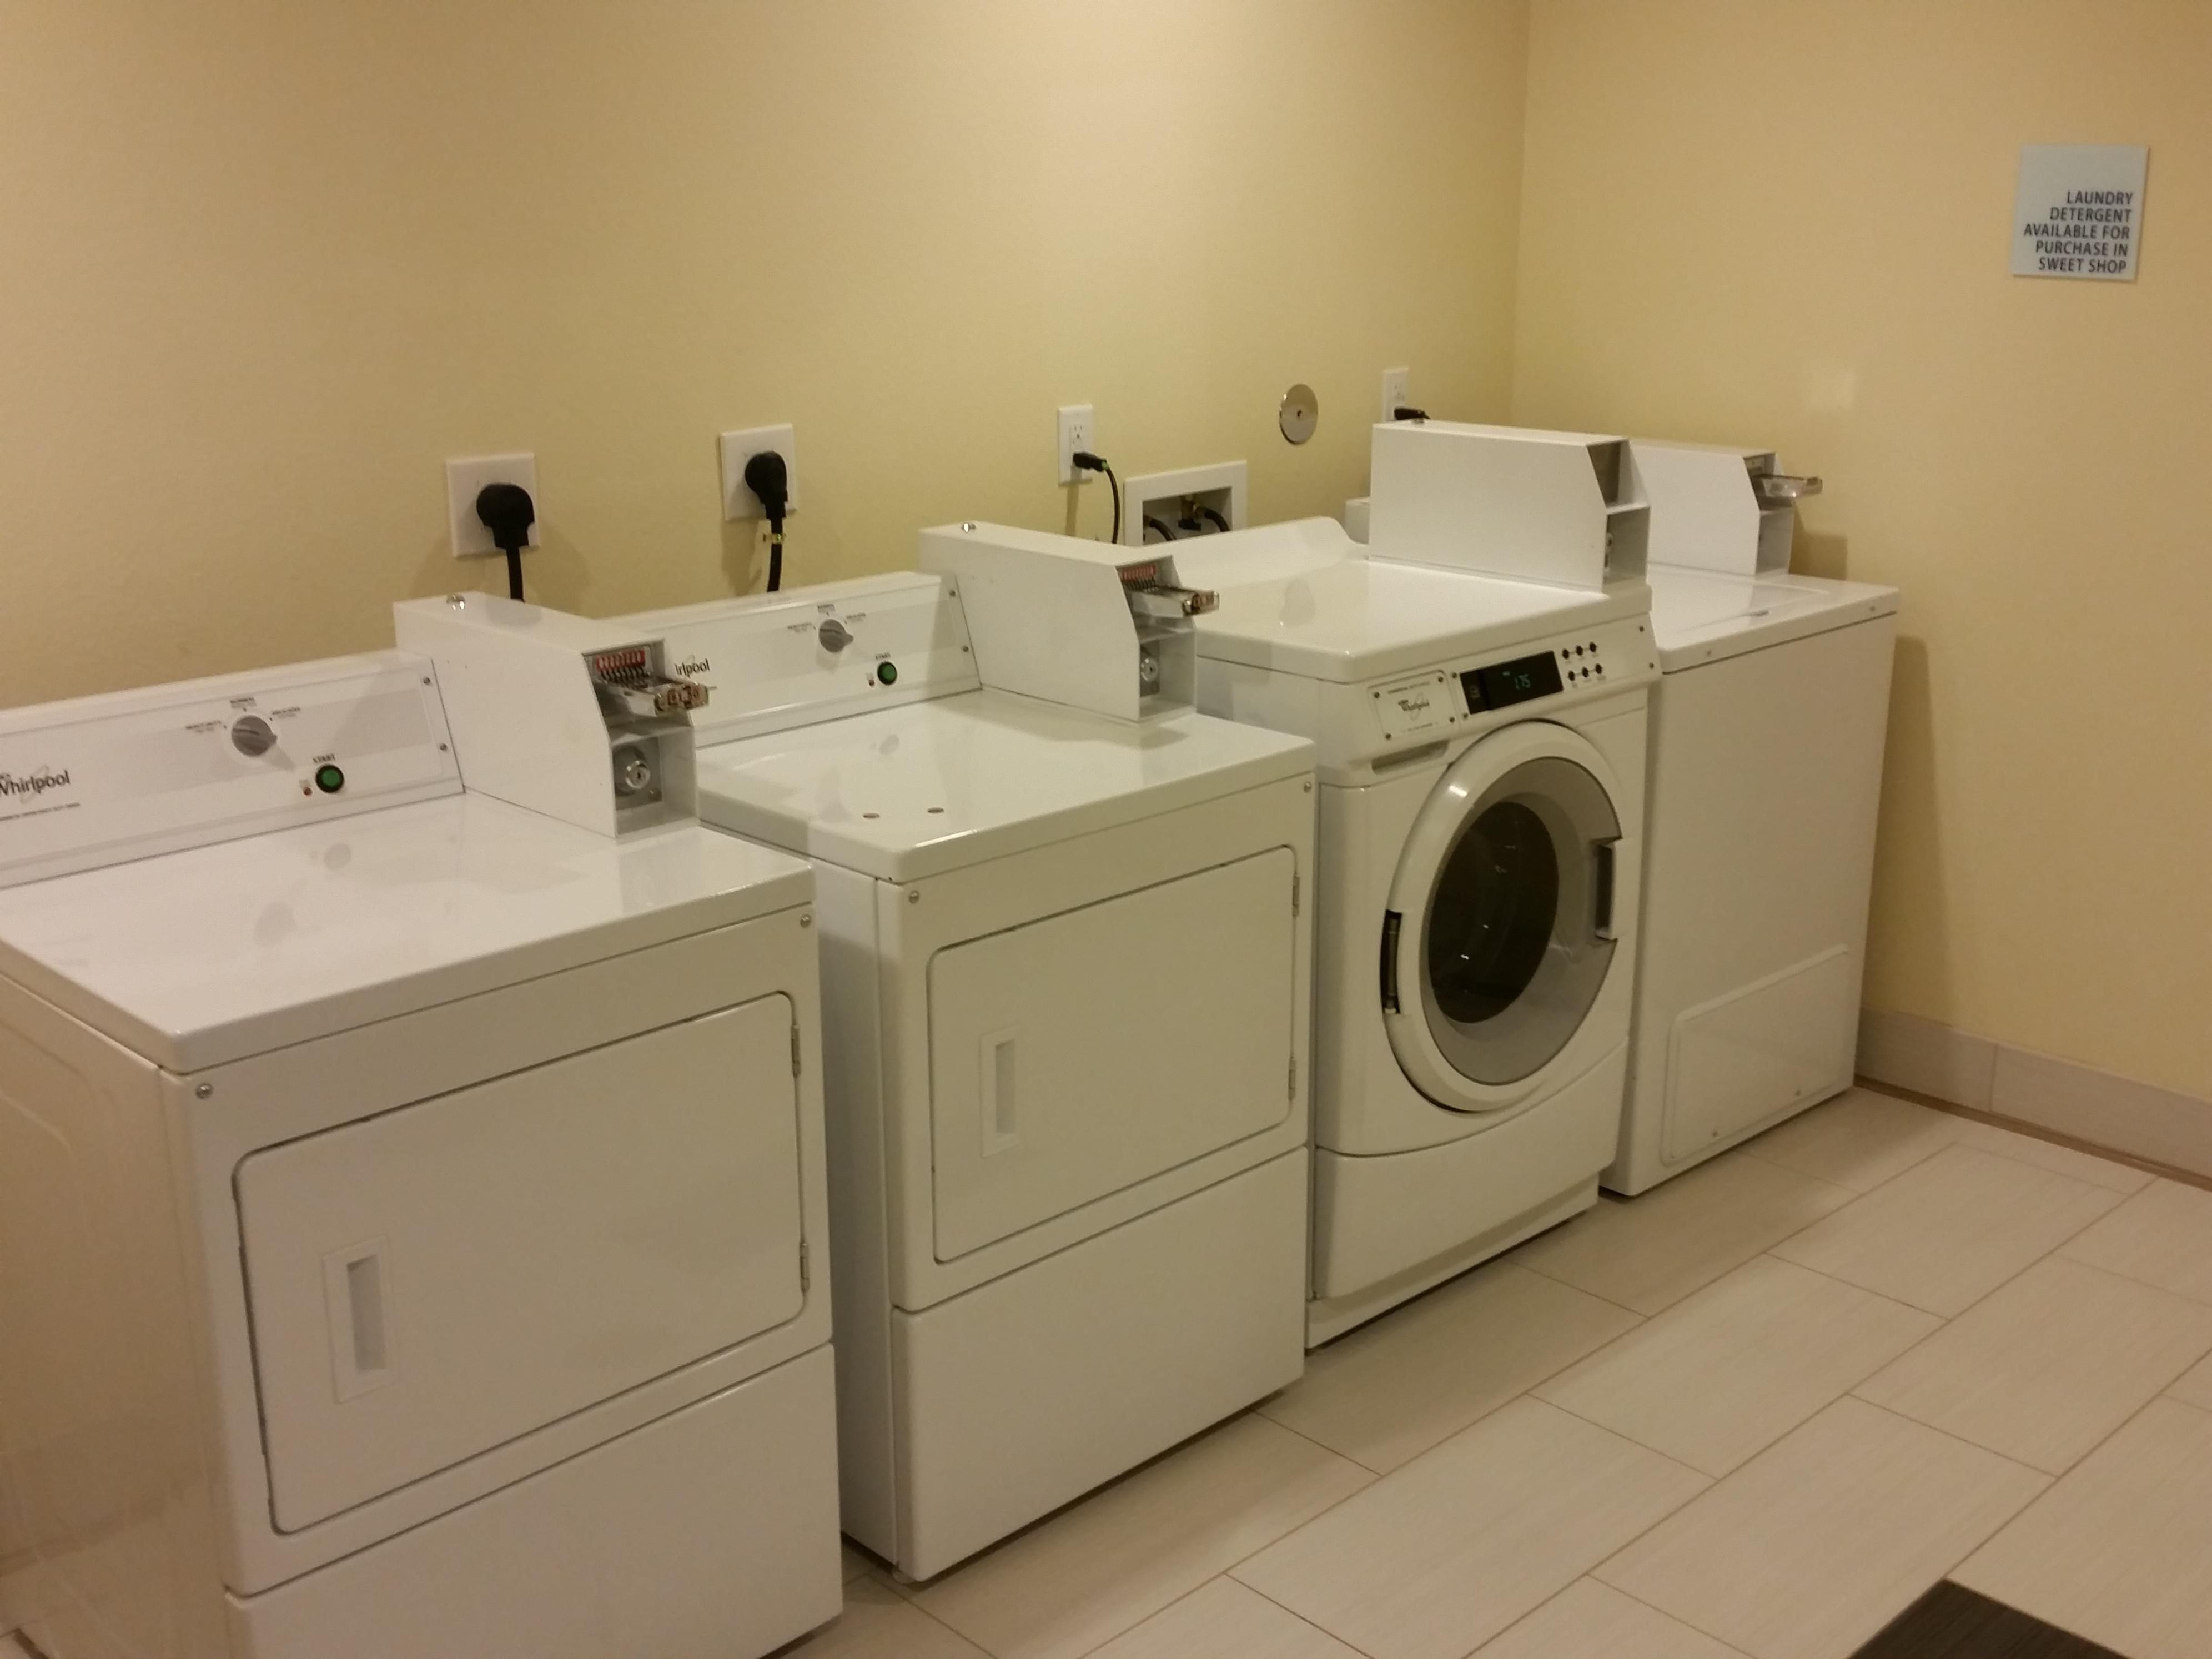 Guest Laundry is located on the second floor of the hotel